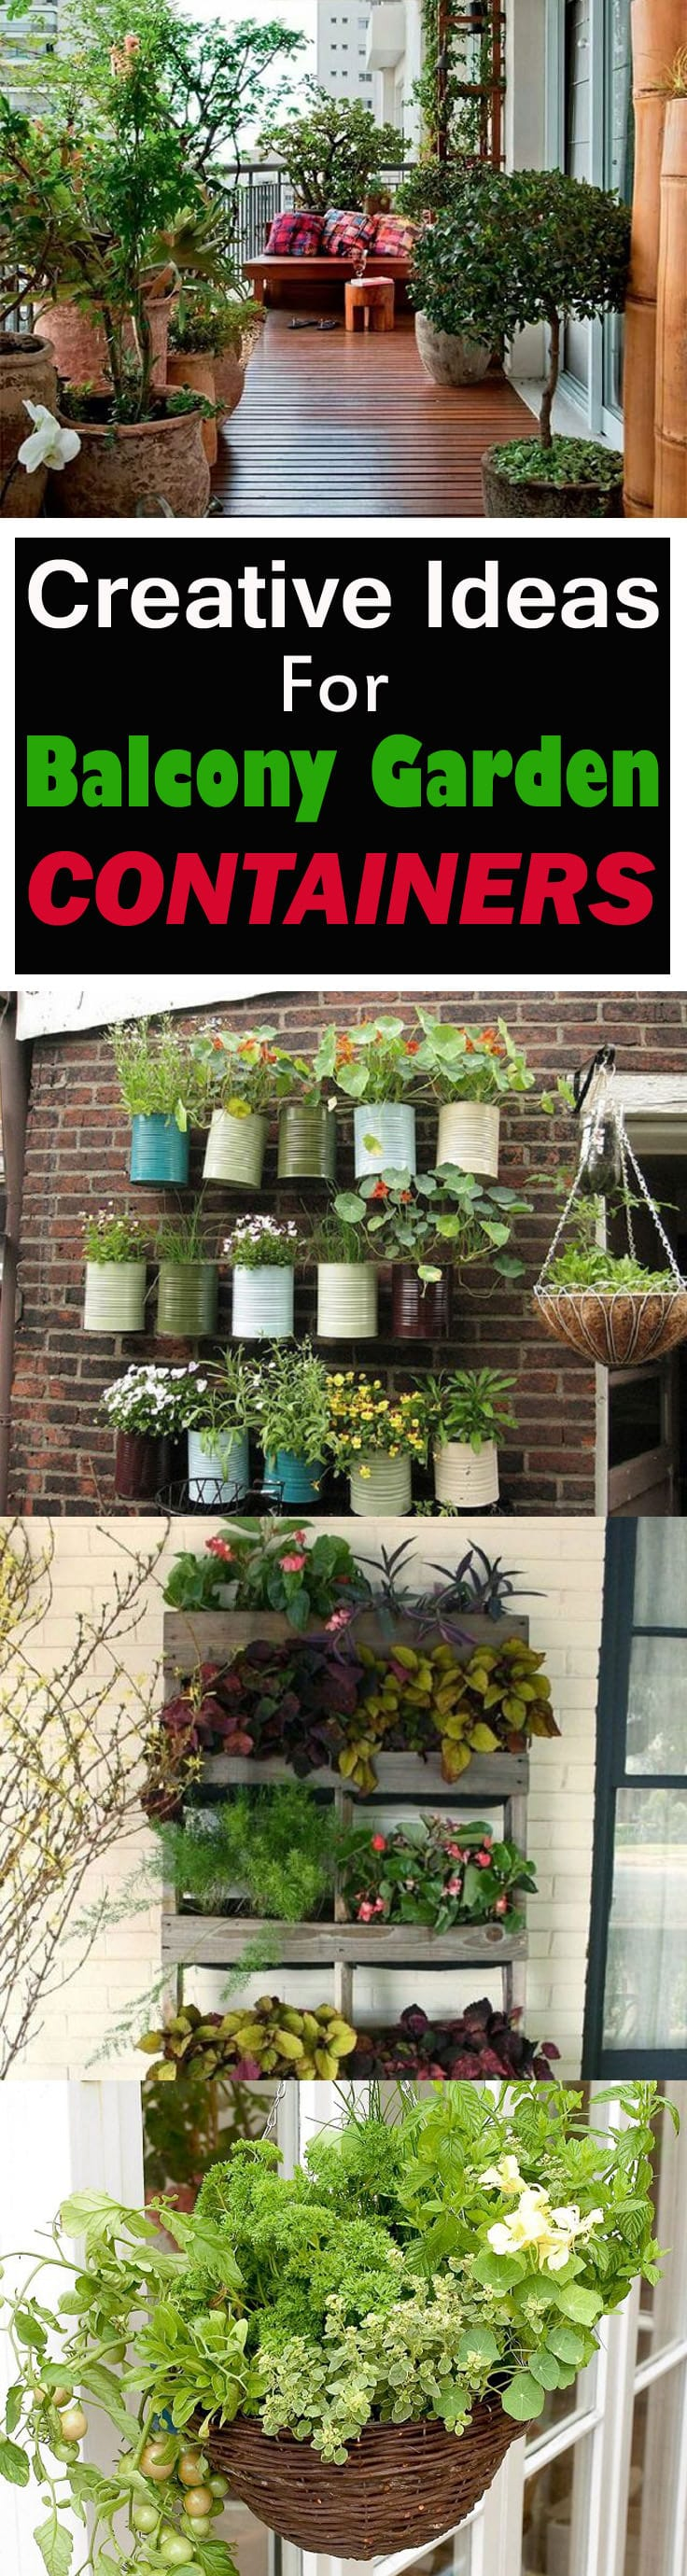 If you have a balcony garden, it doesn't mean you can't be creative and do something unusual-- Here're some ideas to inspire you!